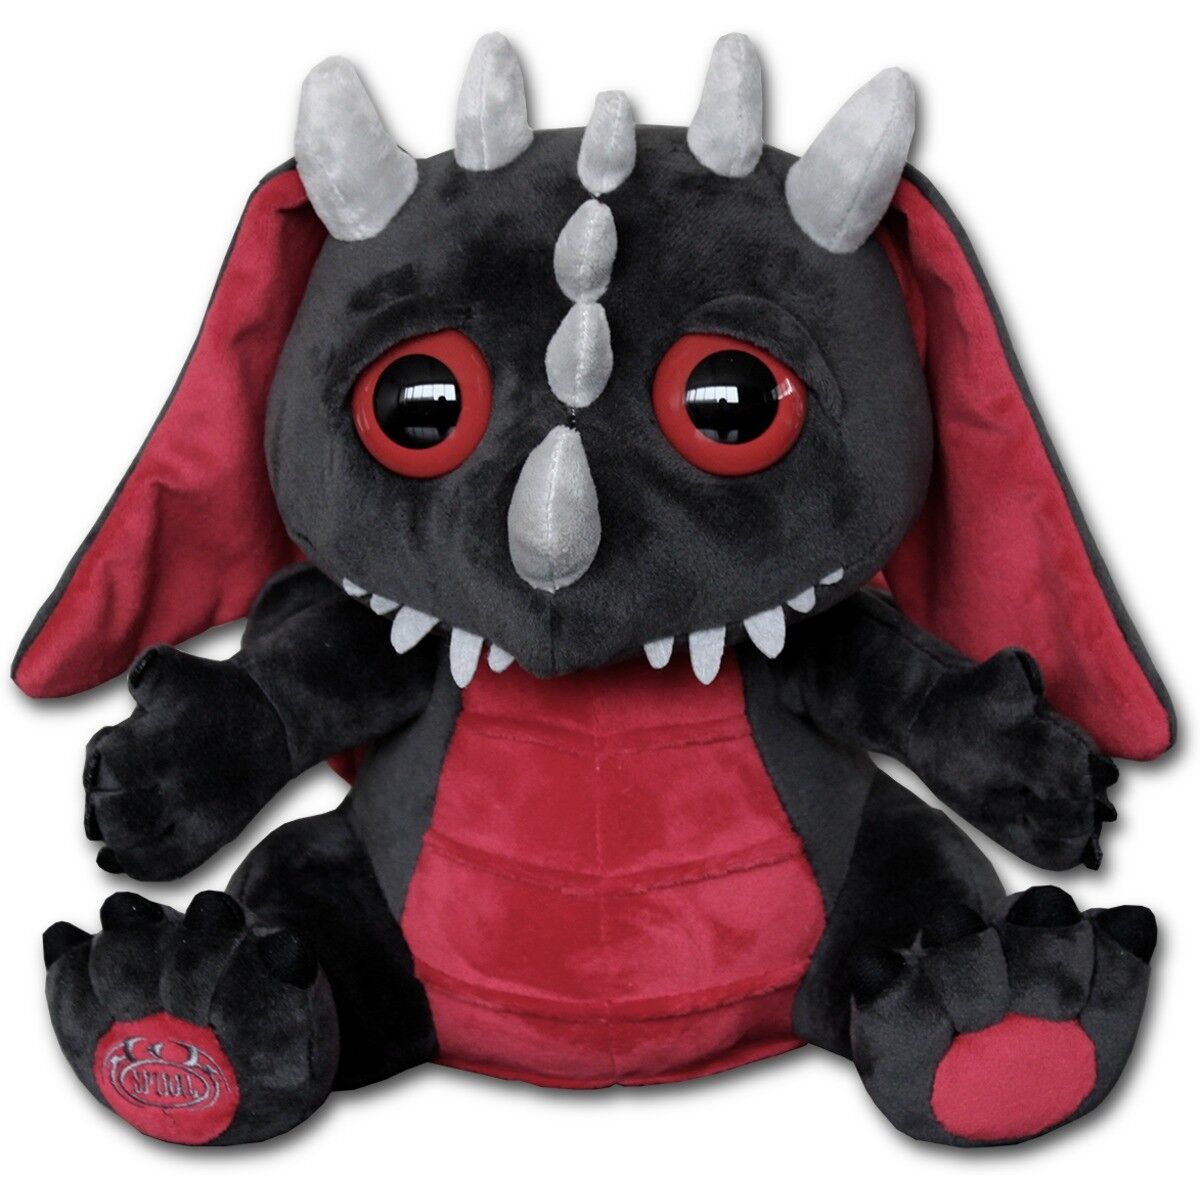 Spiral Direct BABY DRAGON - Collectible Soft Plush Toy Gift Idea Xmas Blood